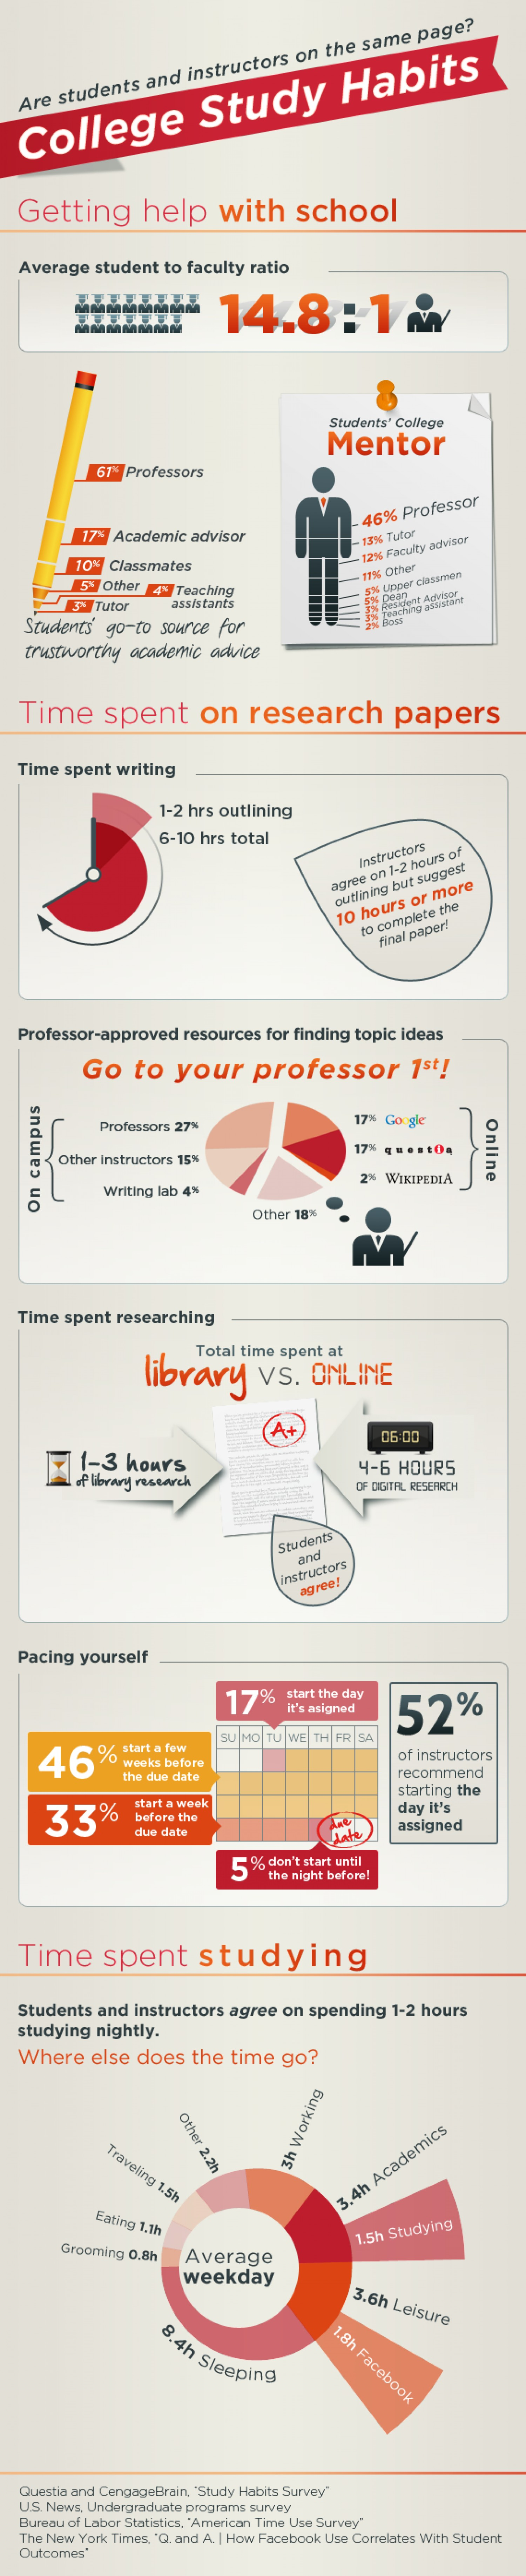 College study habits: Are students and instructors on the same page?